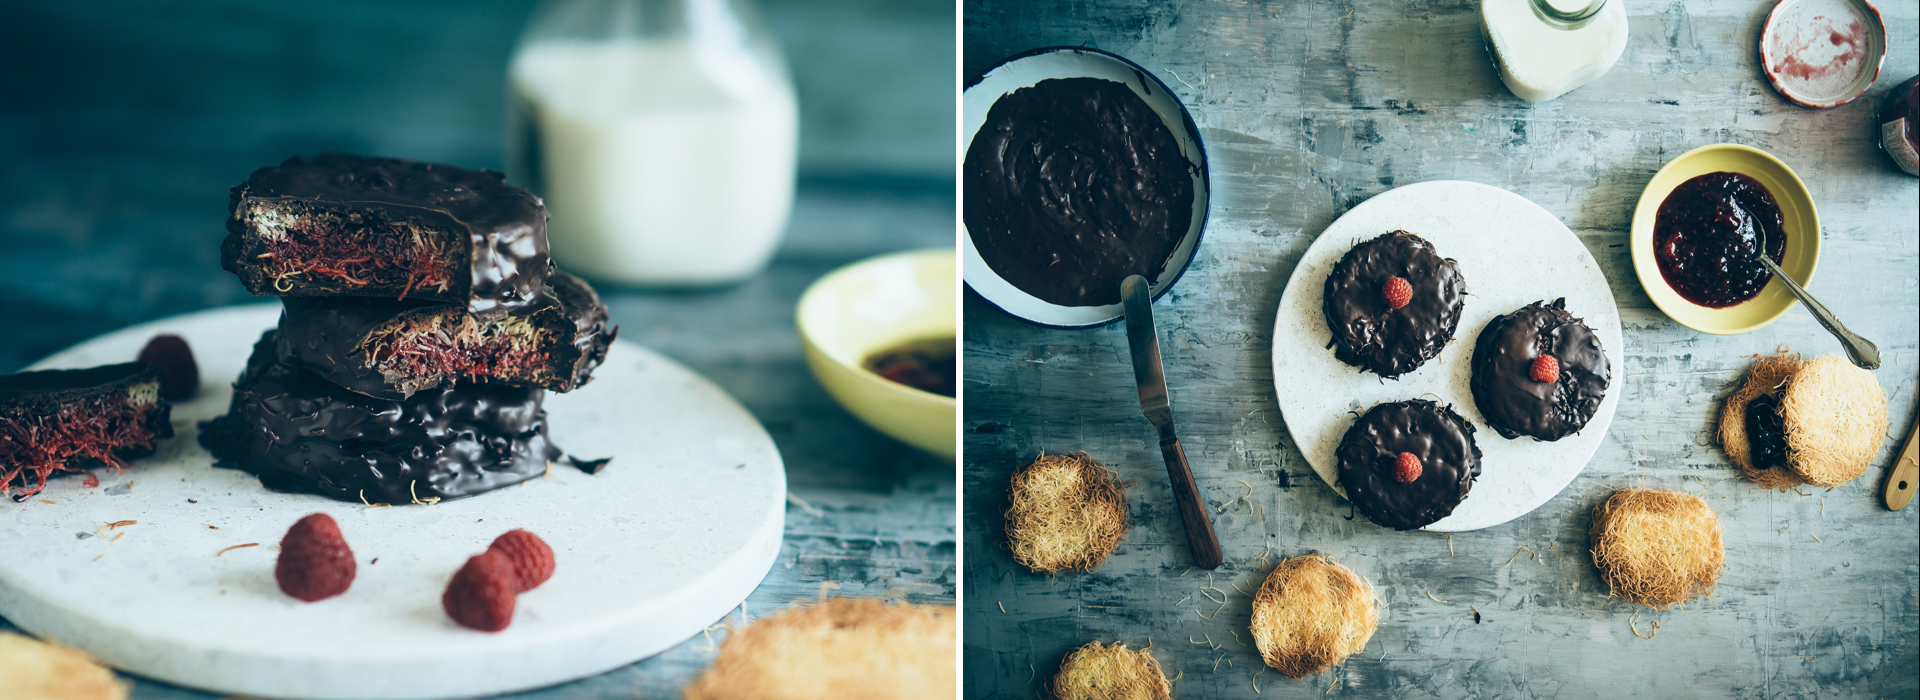 Chocolate Kataifi jam sandwiches | Antoniou Fillo Pastry